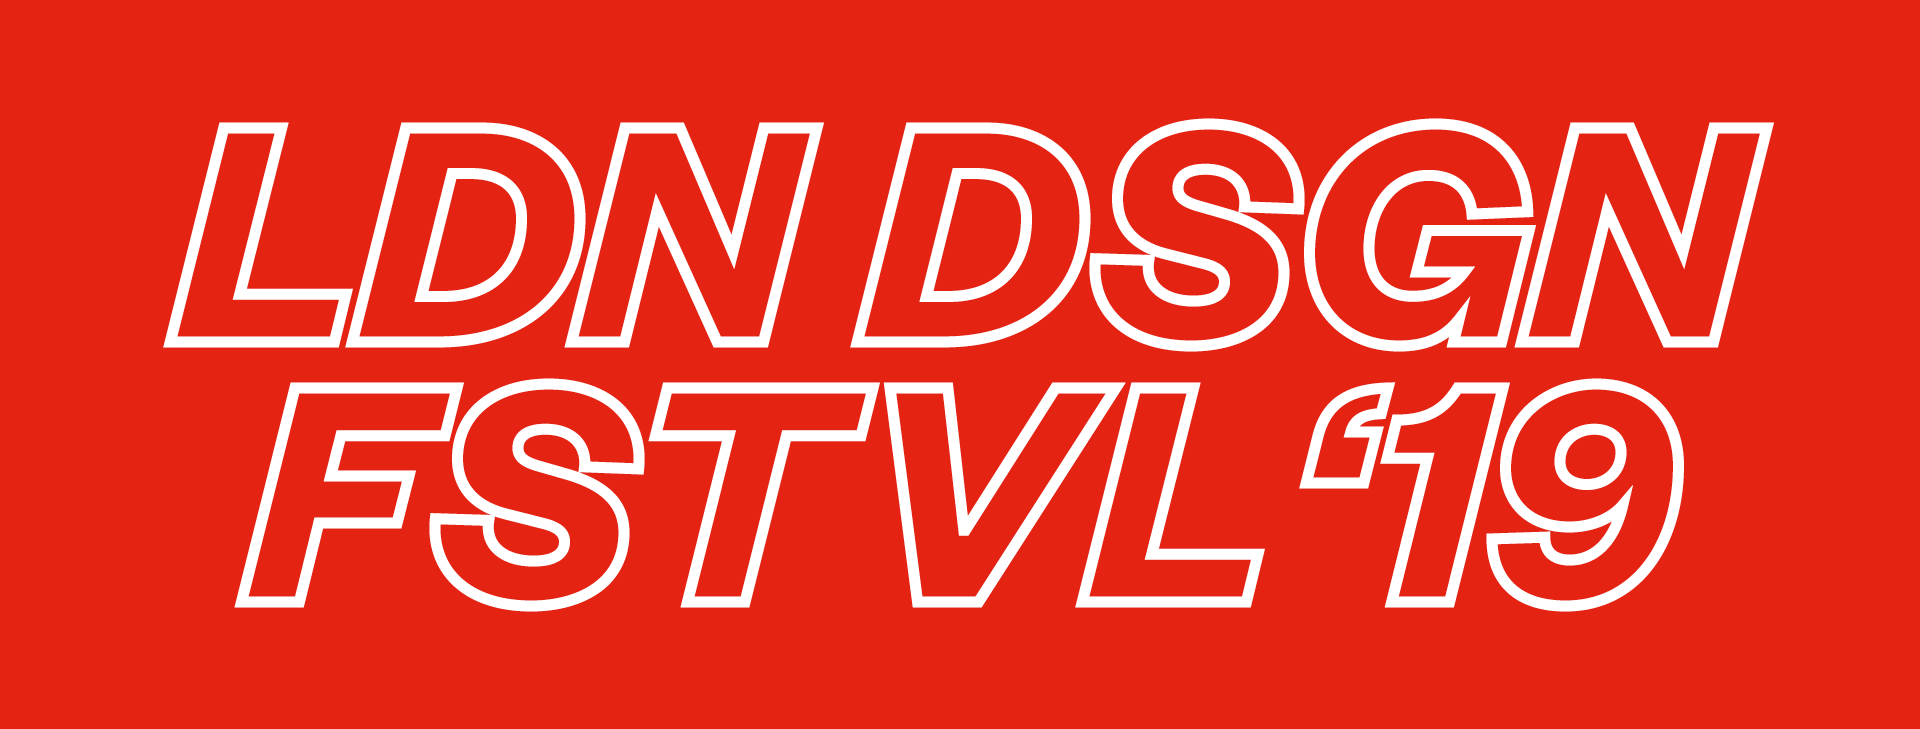 ldf19_web-banner_1.png